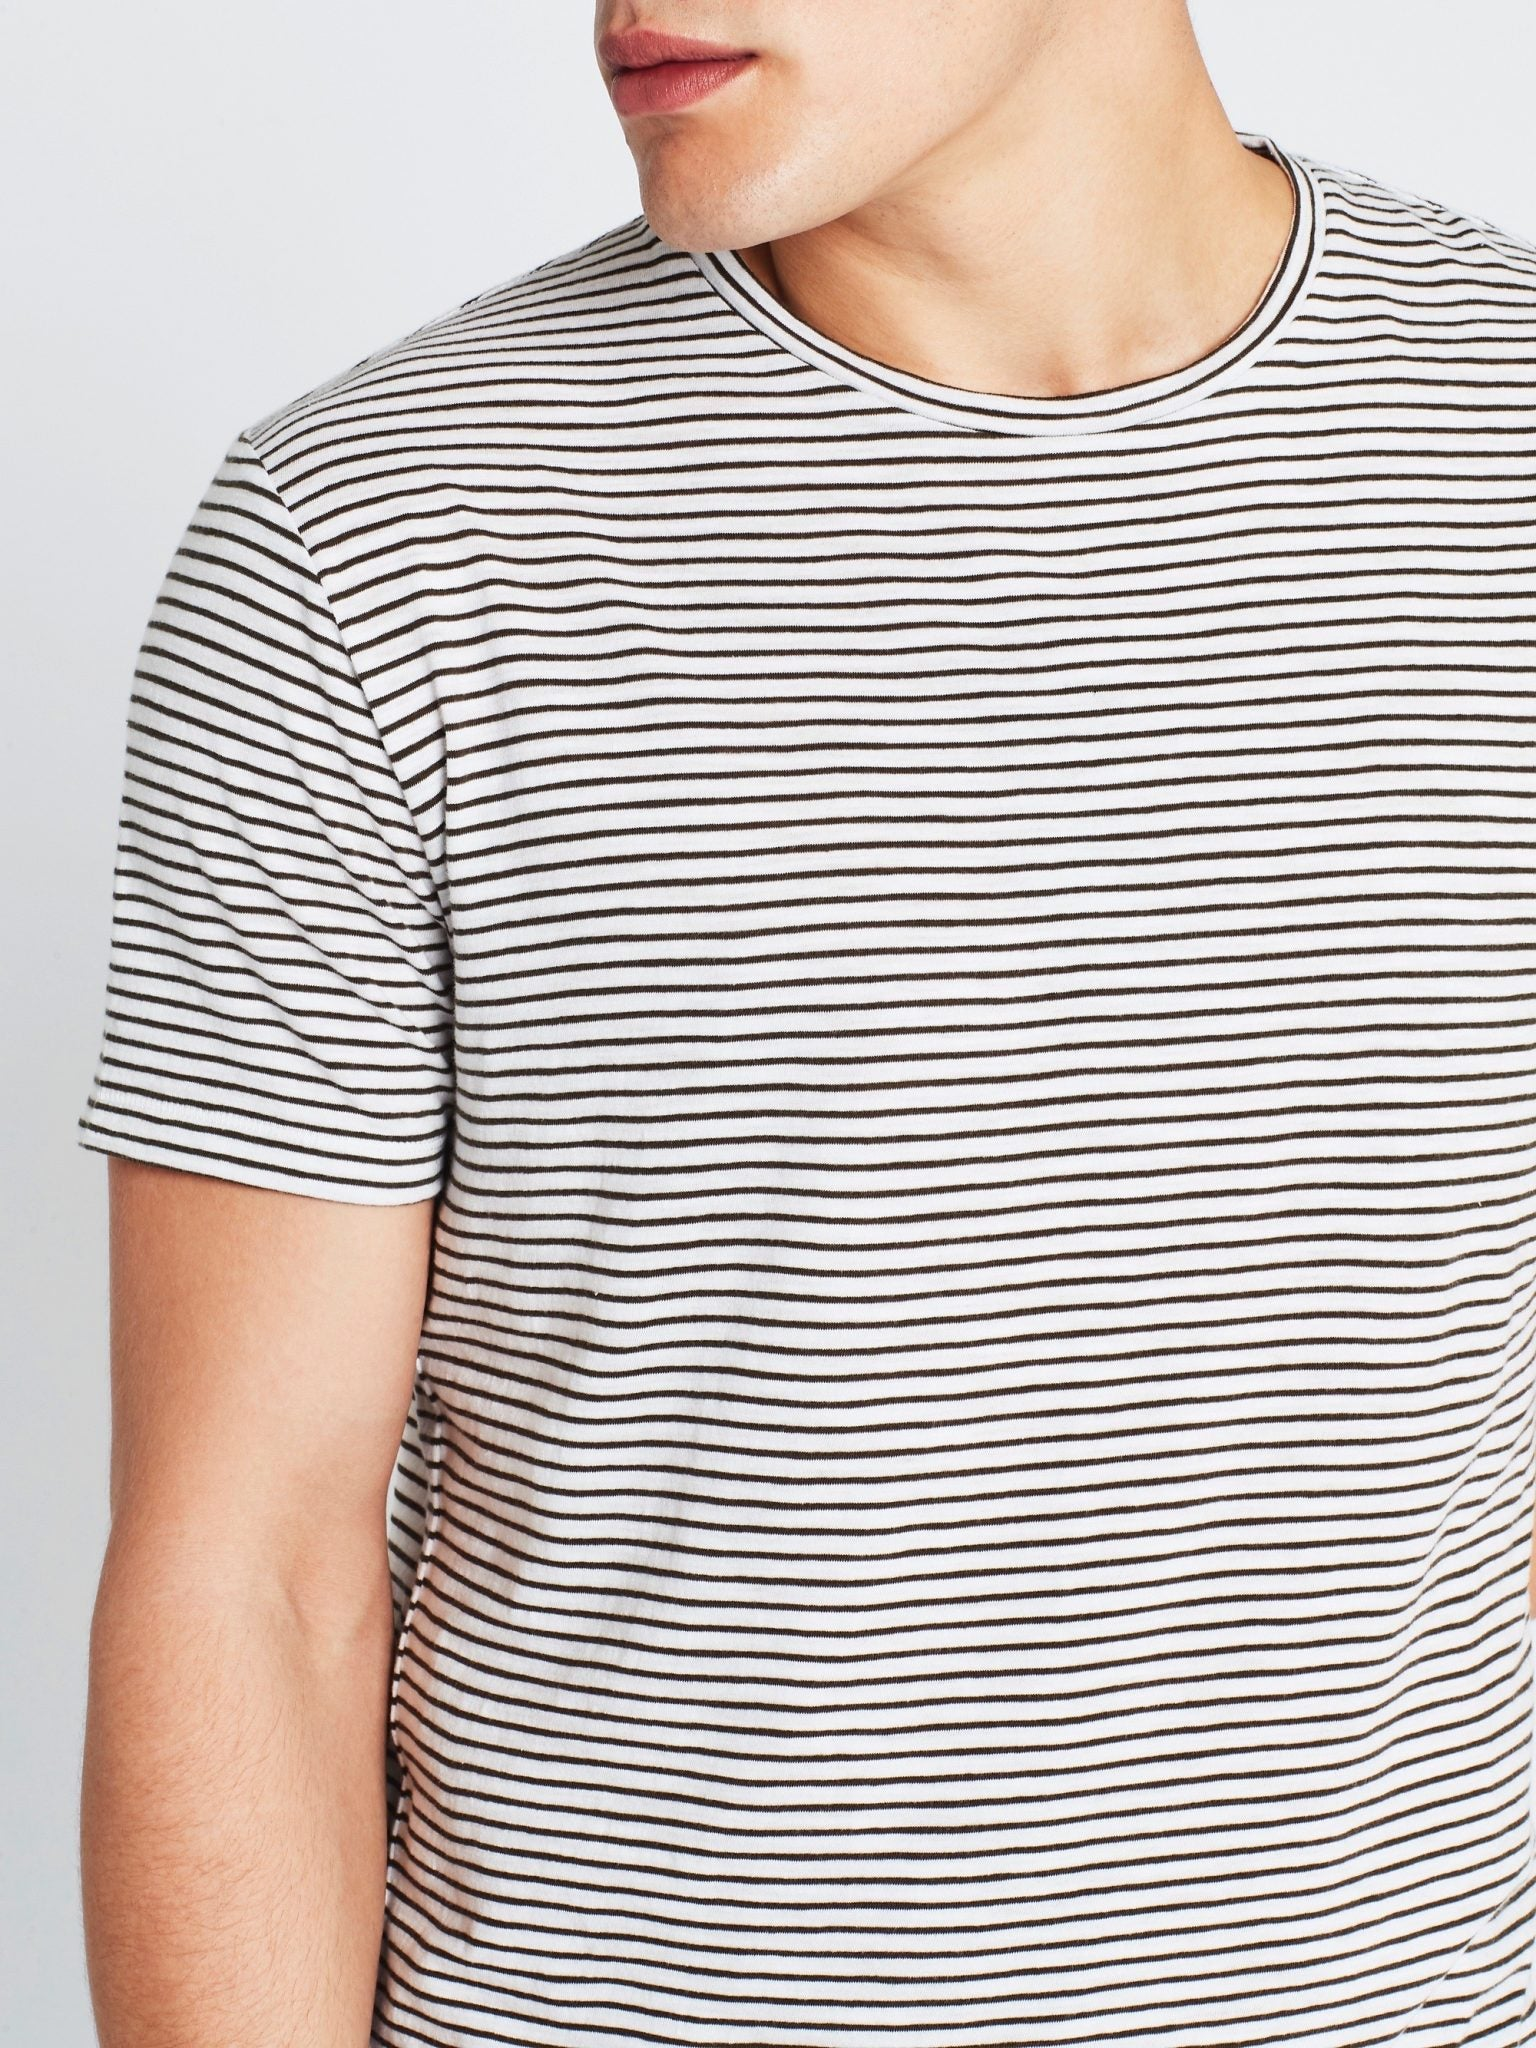 S14-LIAM-06001A0301-NATURAL-MILITARY-STRIPE-SS18-18493-Mavi-0179